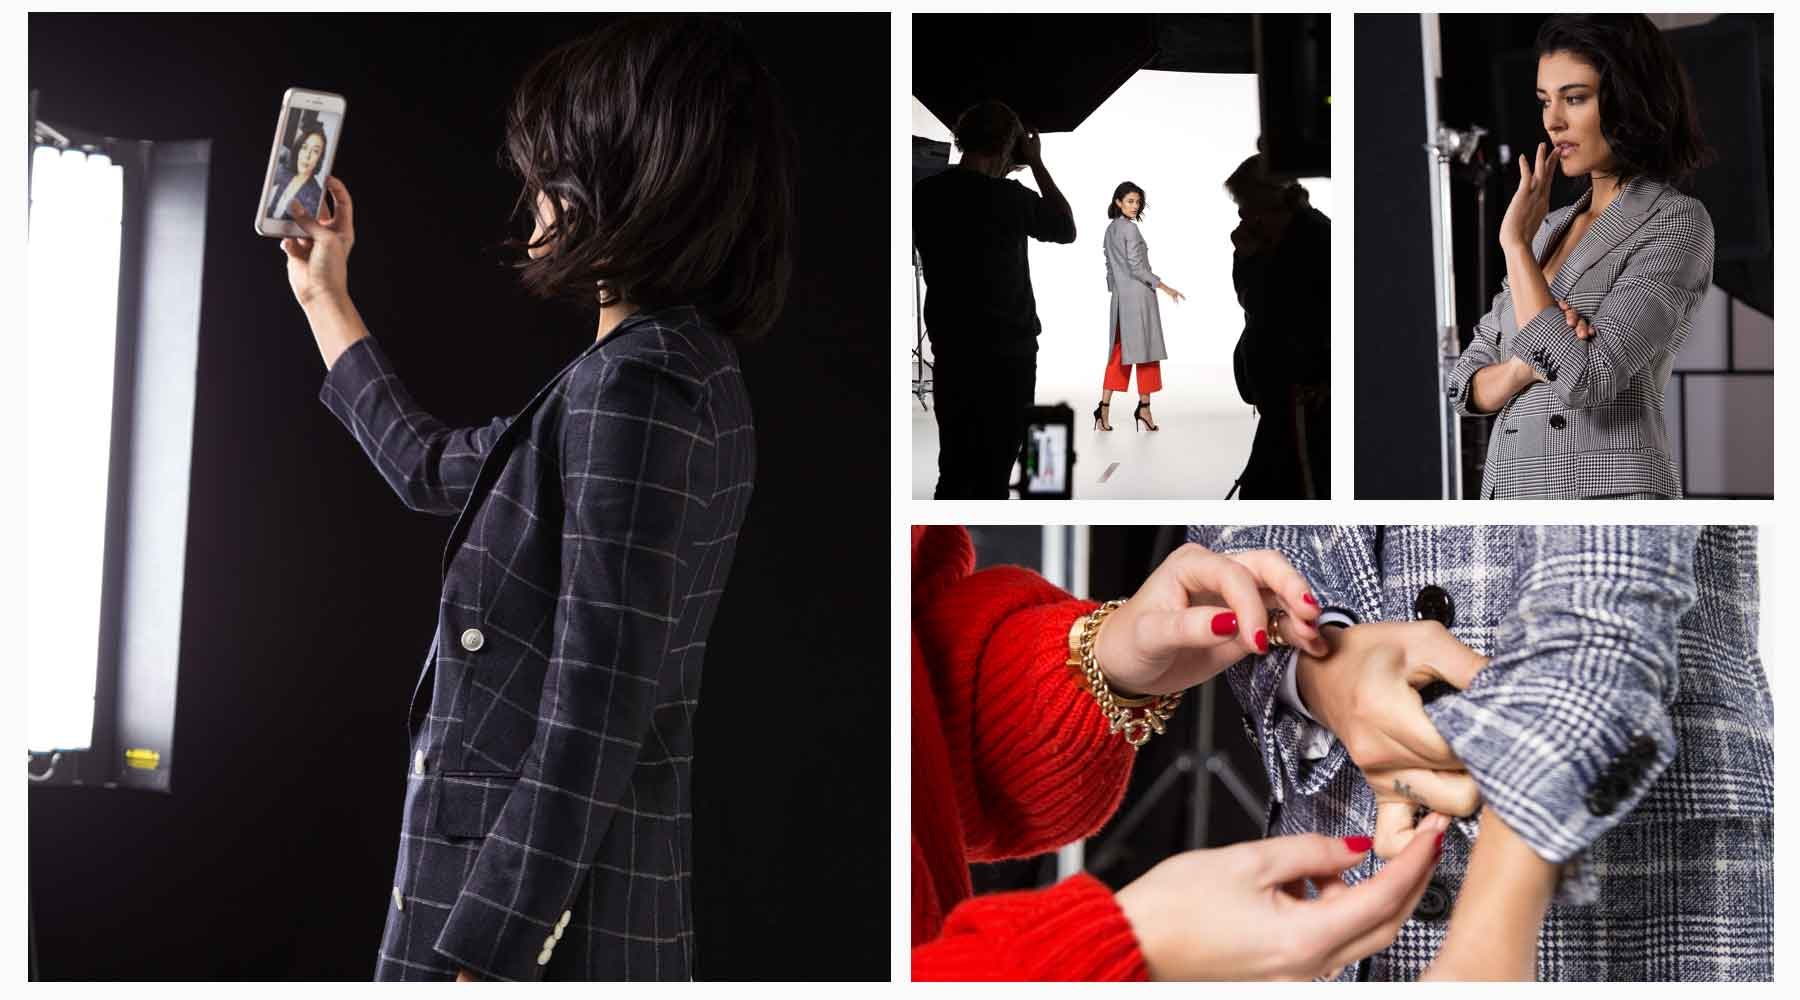 Social media Instagram Stories behind the scenes of a fashion shoot.